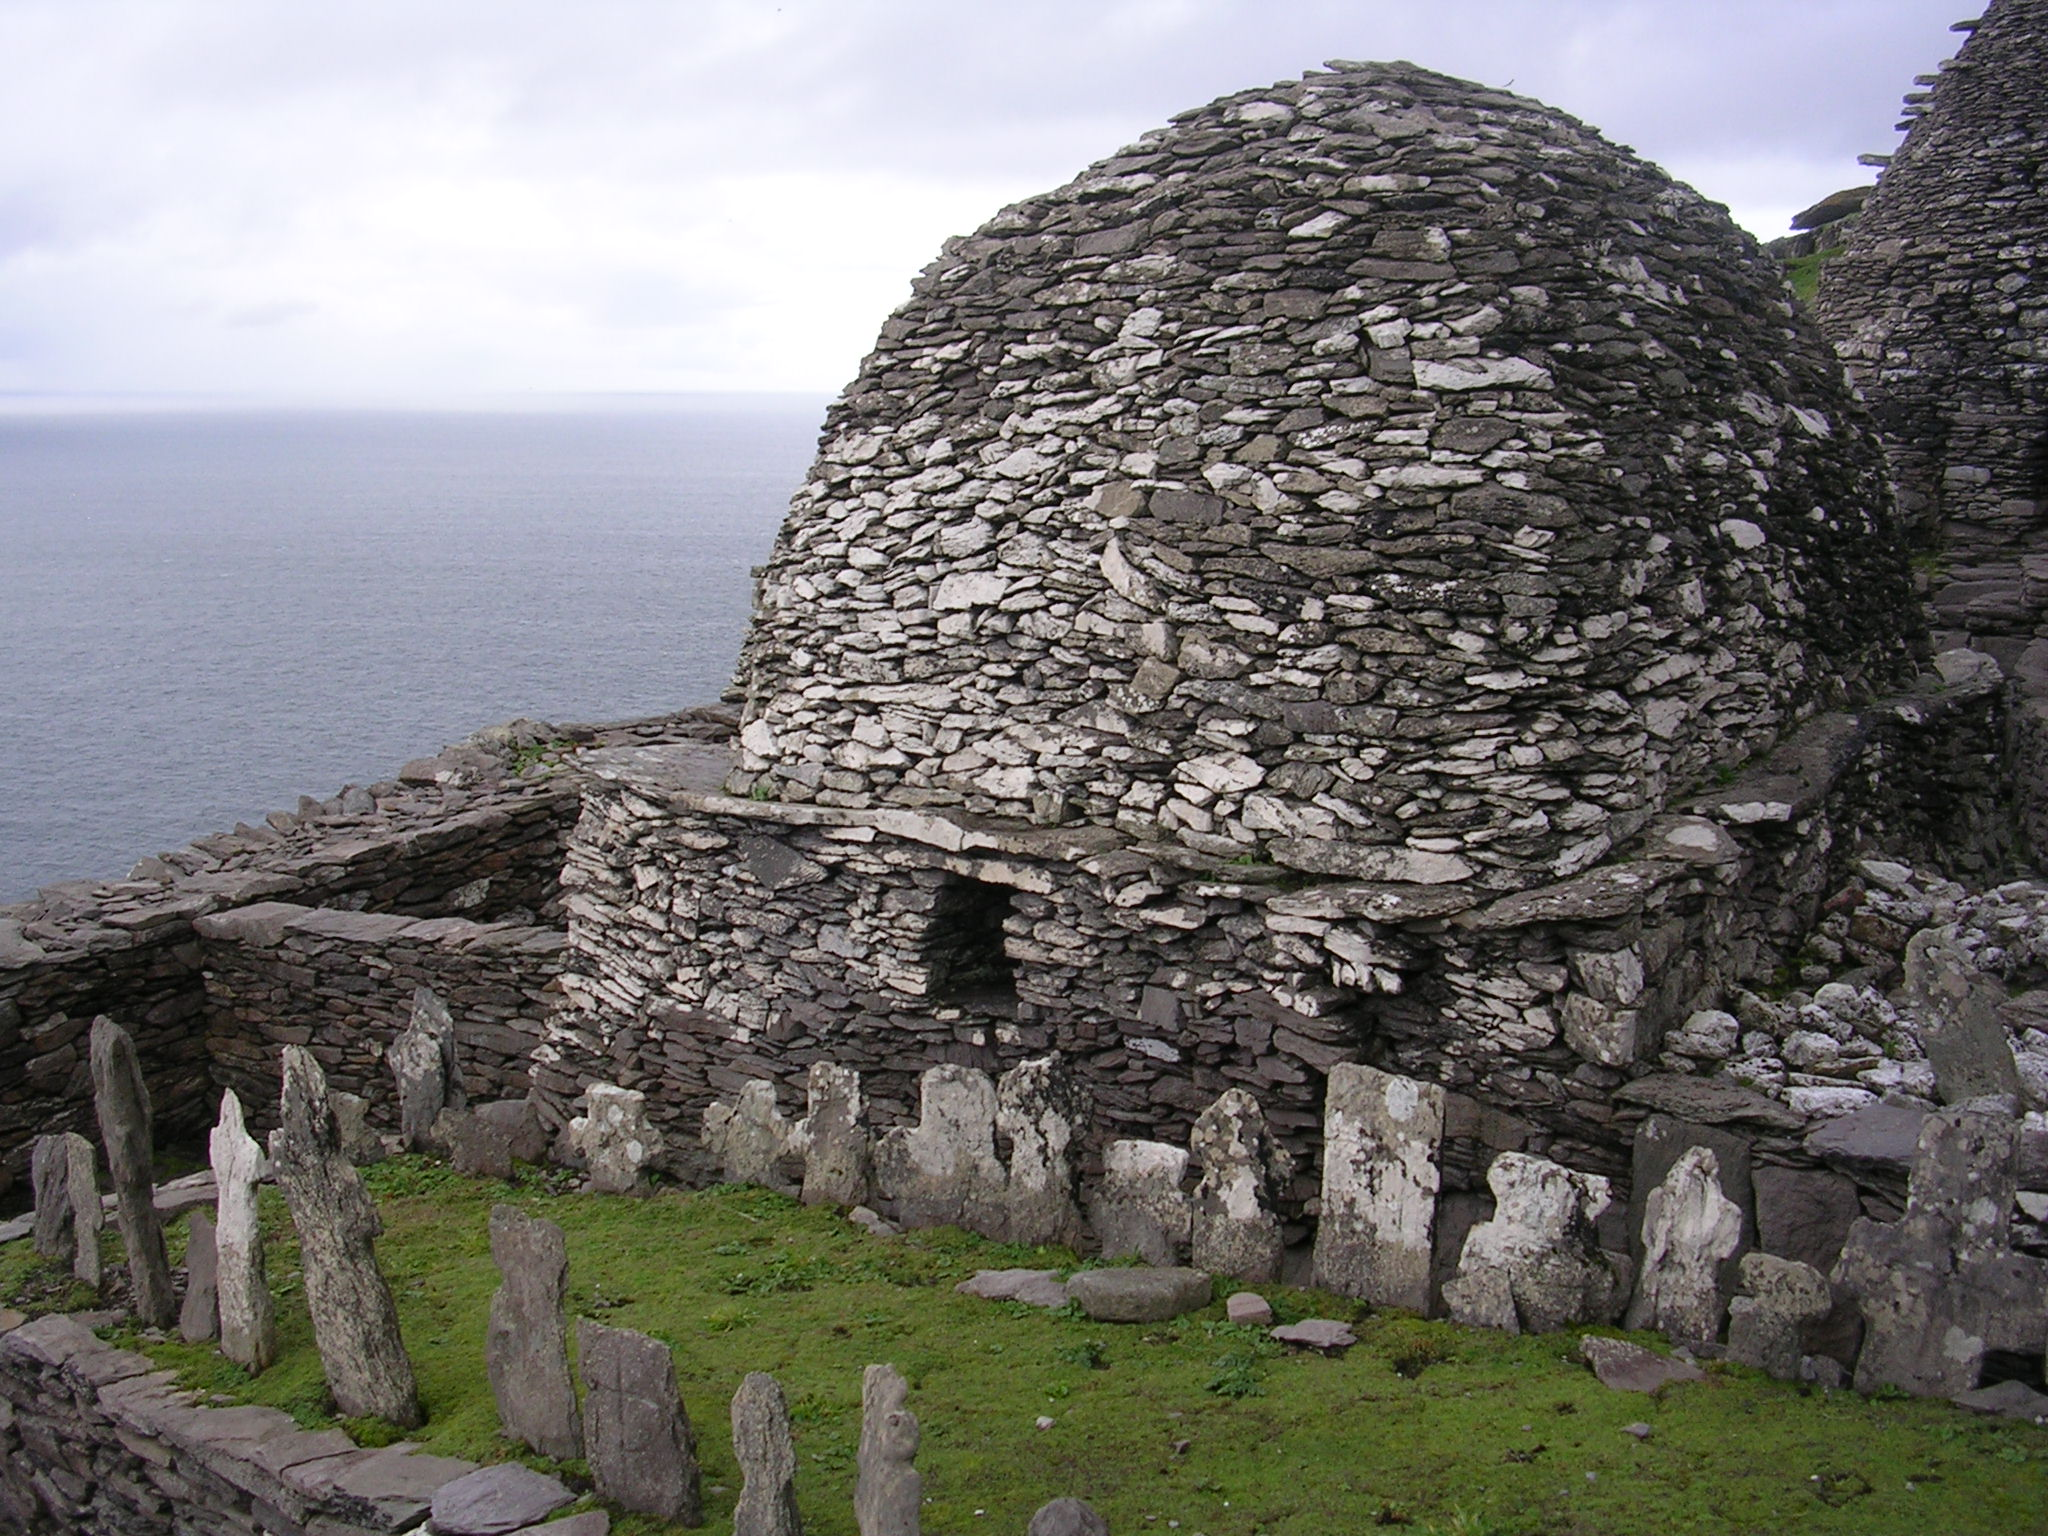 Star Wars Returning To Skellig Michael Island But For